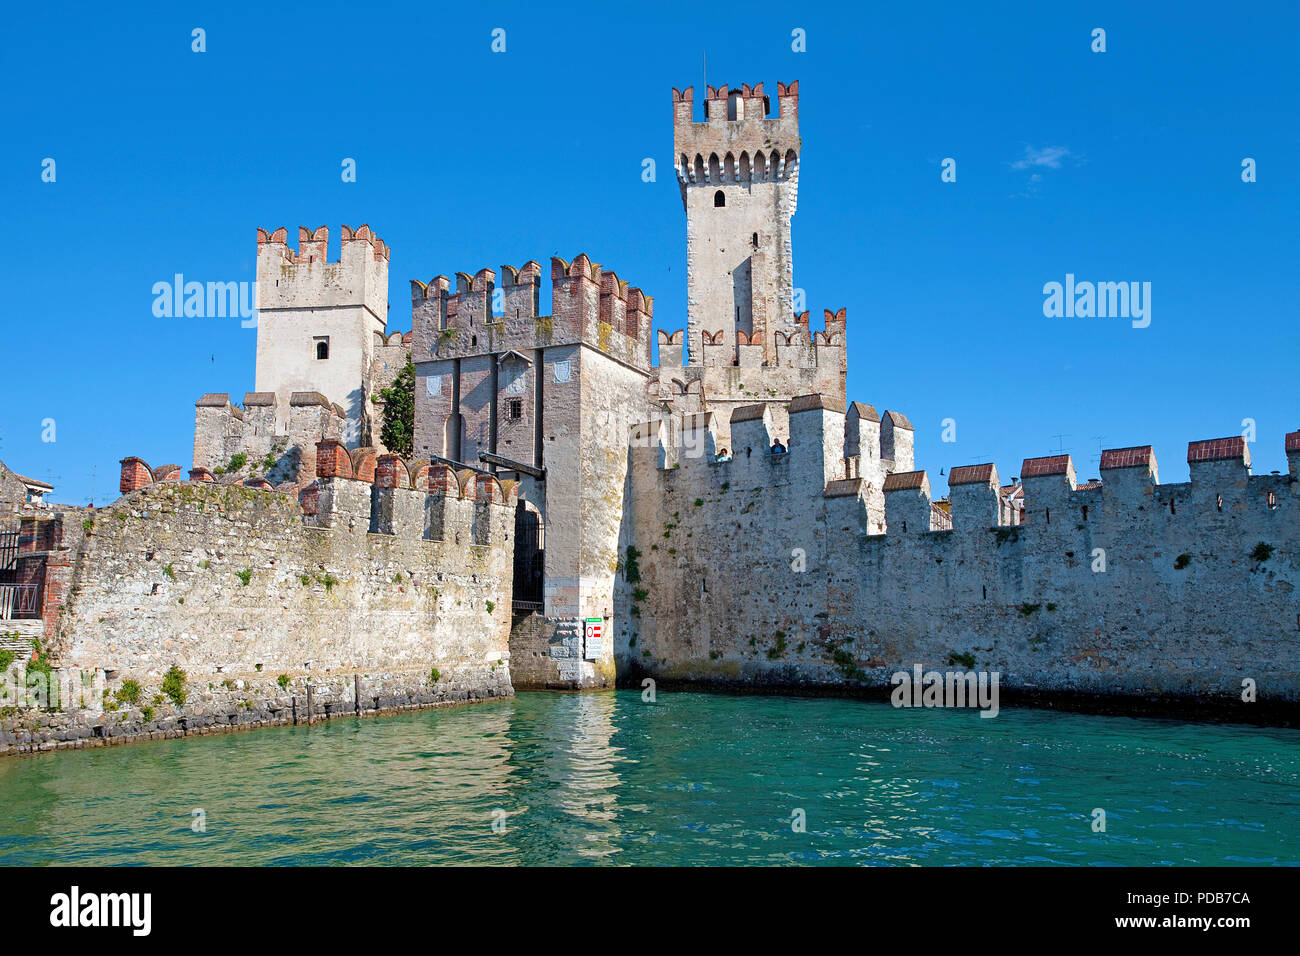 Scaliger castle, landmark of Sirmione, Lake Garda, Lombardy, Italy - Stock Image